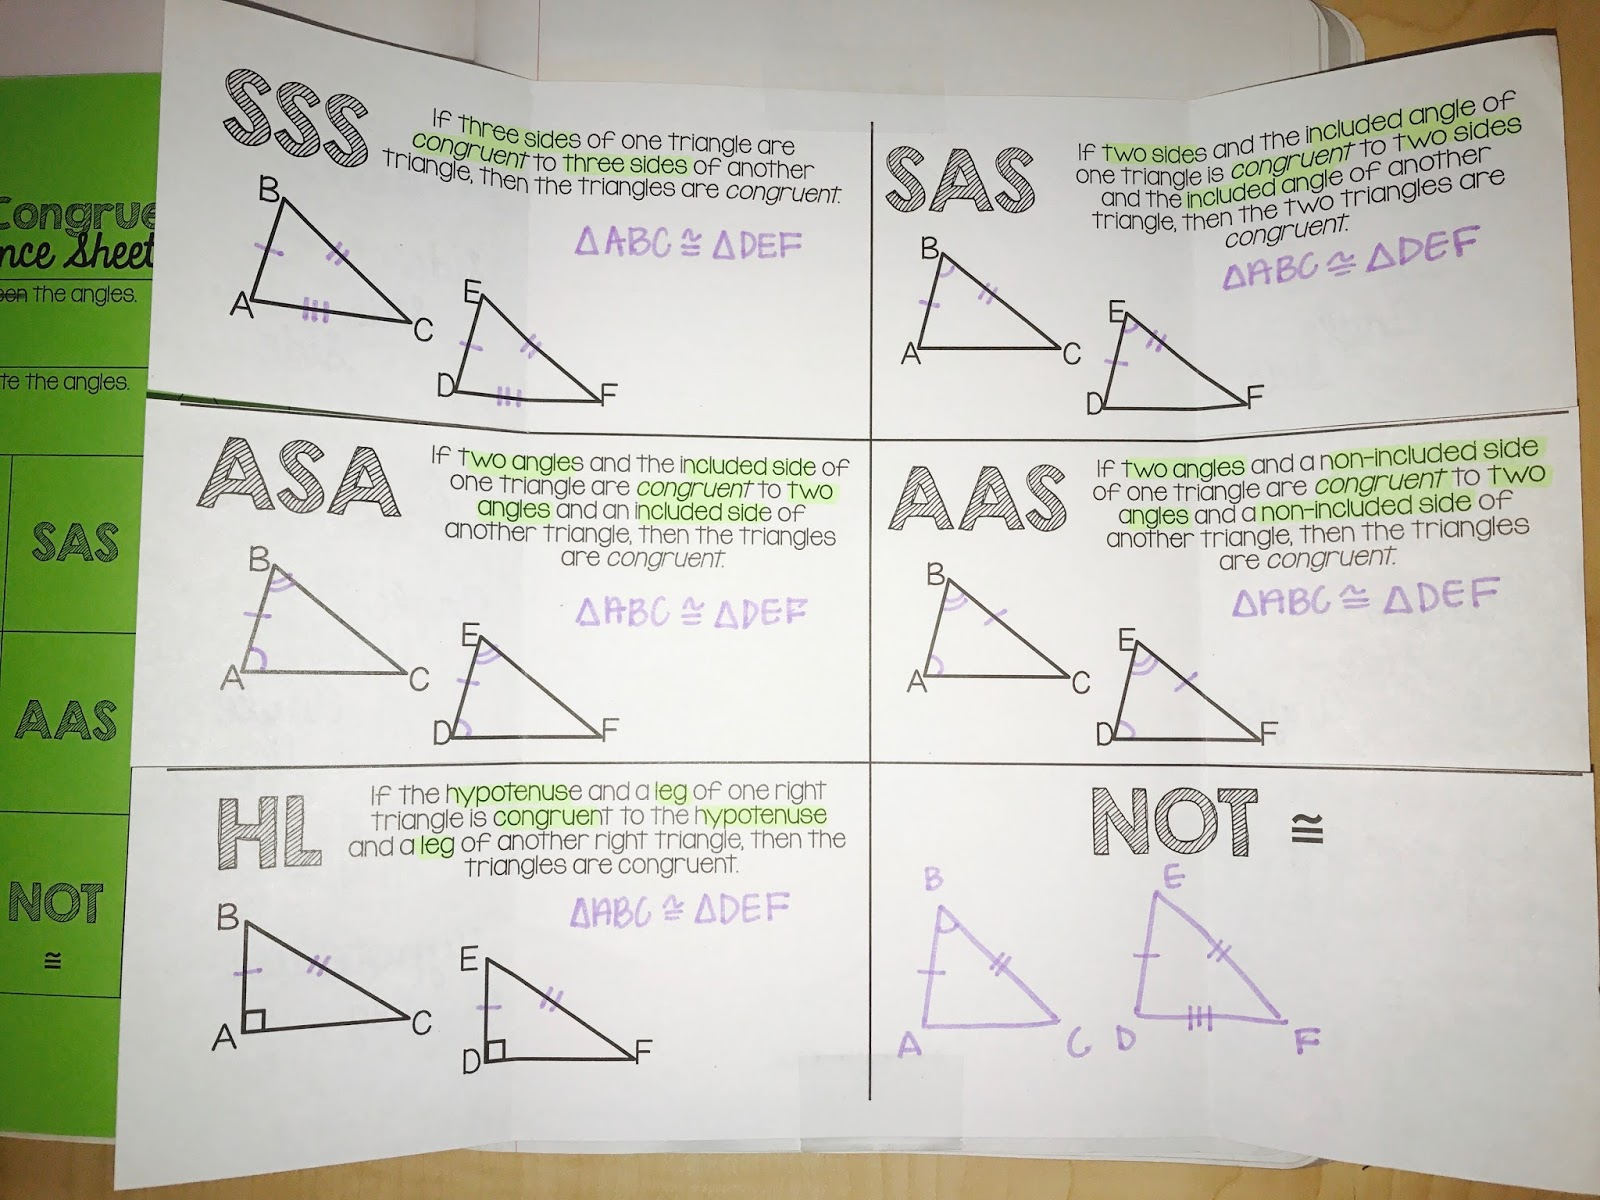 worksheet Congruent Triangles And Similar Triangles Worksheet Answers 2016 2017 triangles unit mrs newells math i am looking forward to using the following triangle congruence foldable with my students this year along reference sheet